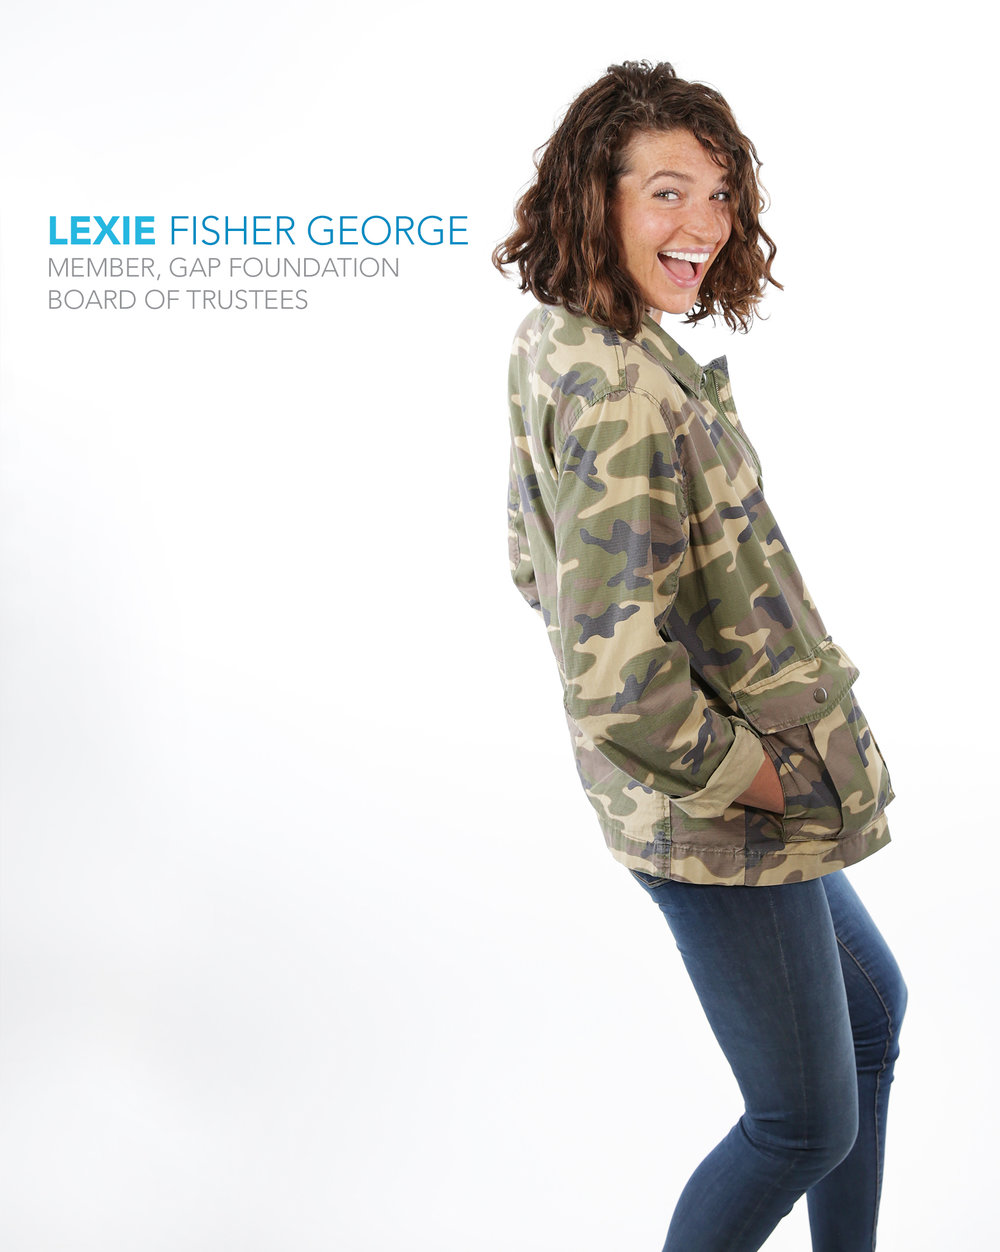 Lexie Fisher George